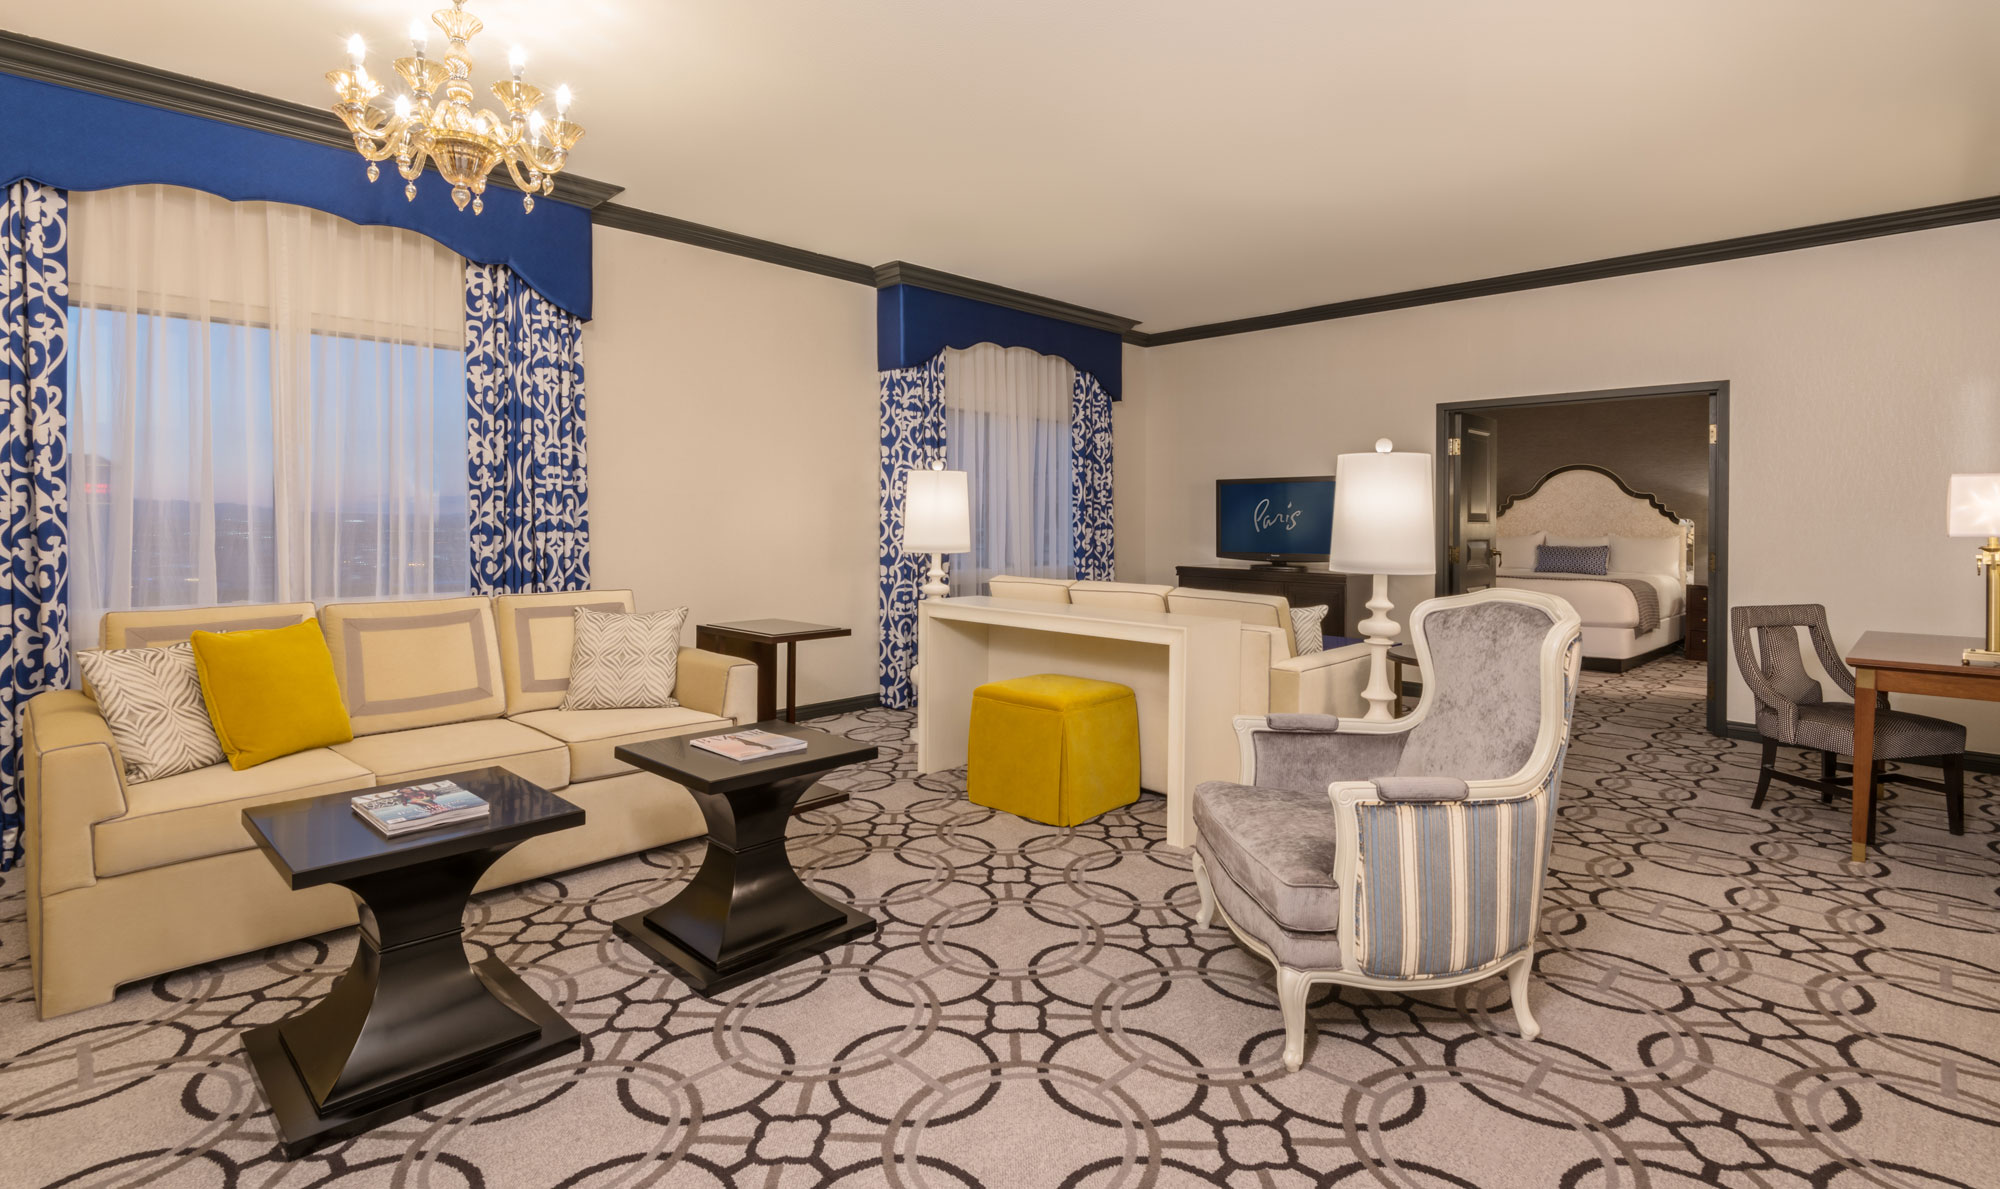 Living Room Suits : Ooh, la la: Paris Las Vegas hotel rooms get a snazzy ...